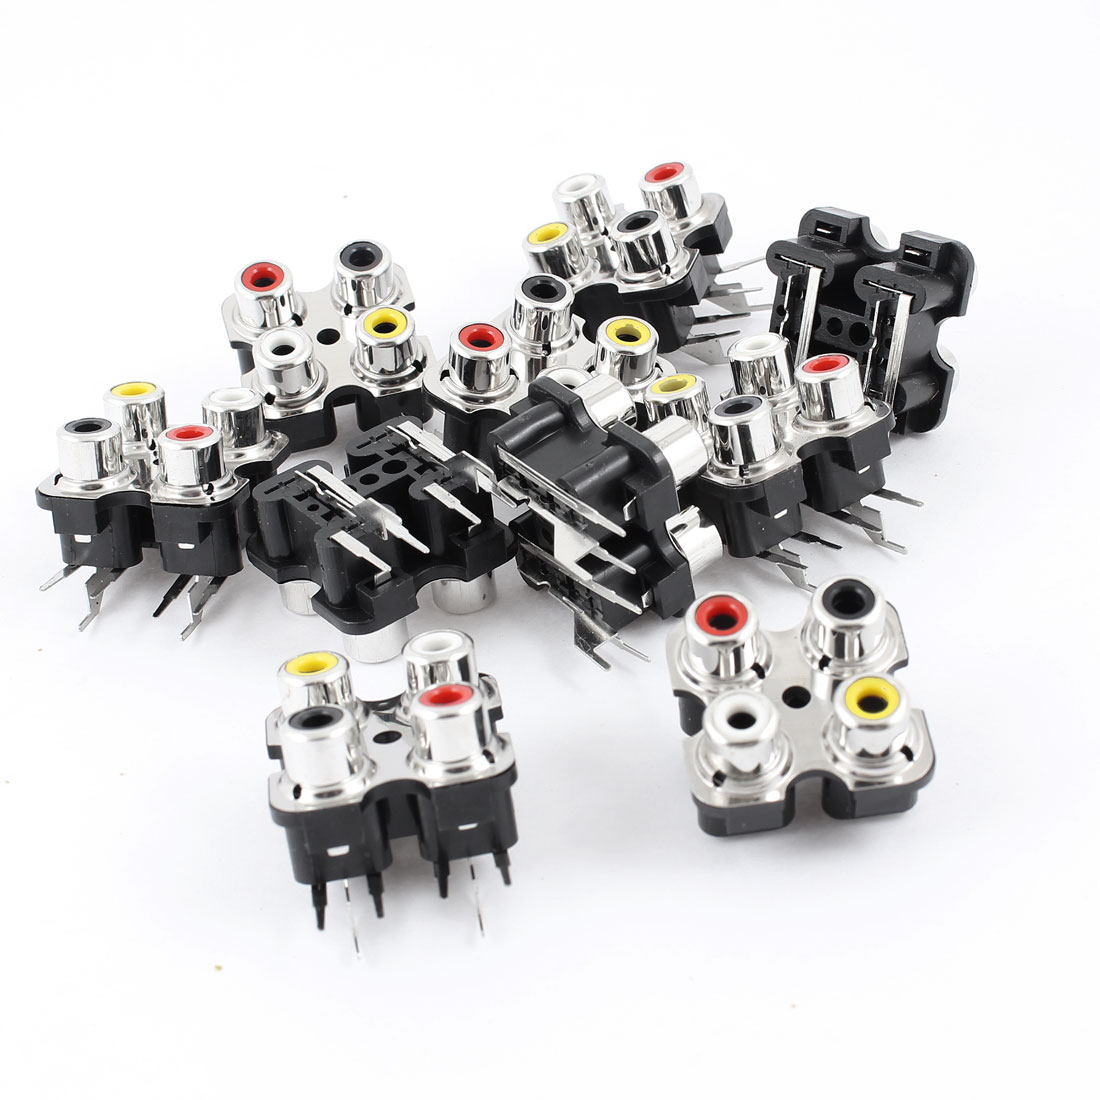 PCB Mount AV Concentric Outlet 4 RCA Female Socket Black Board 10 Pcs